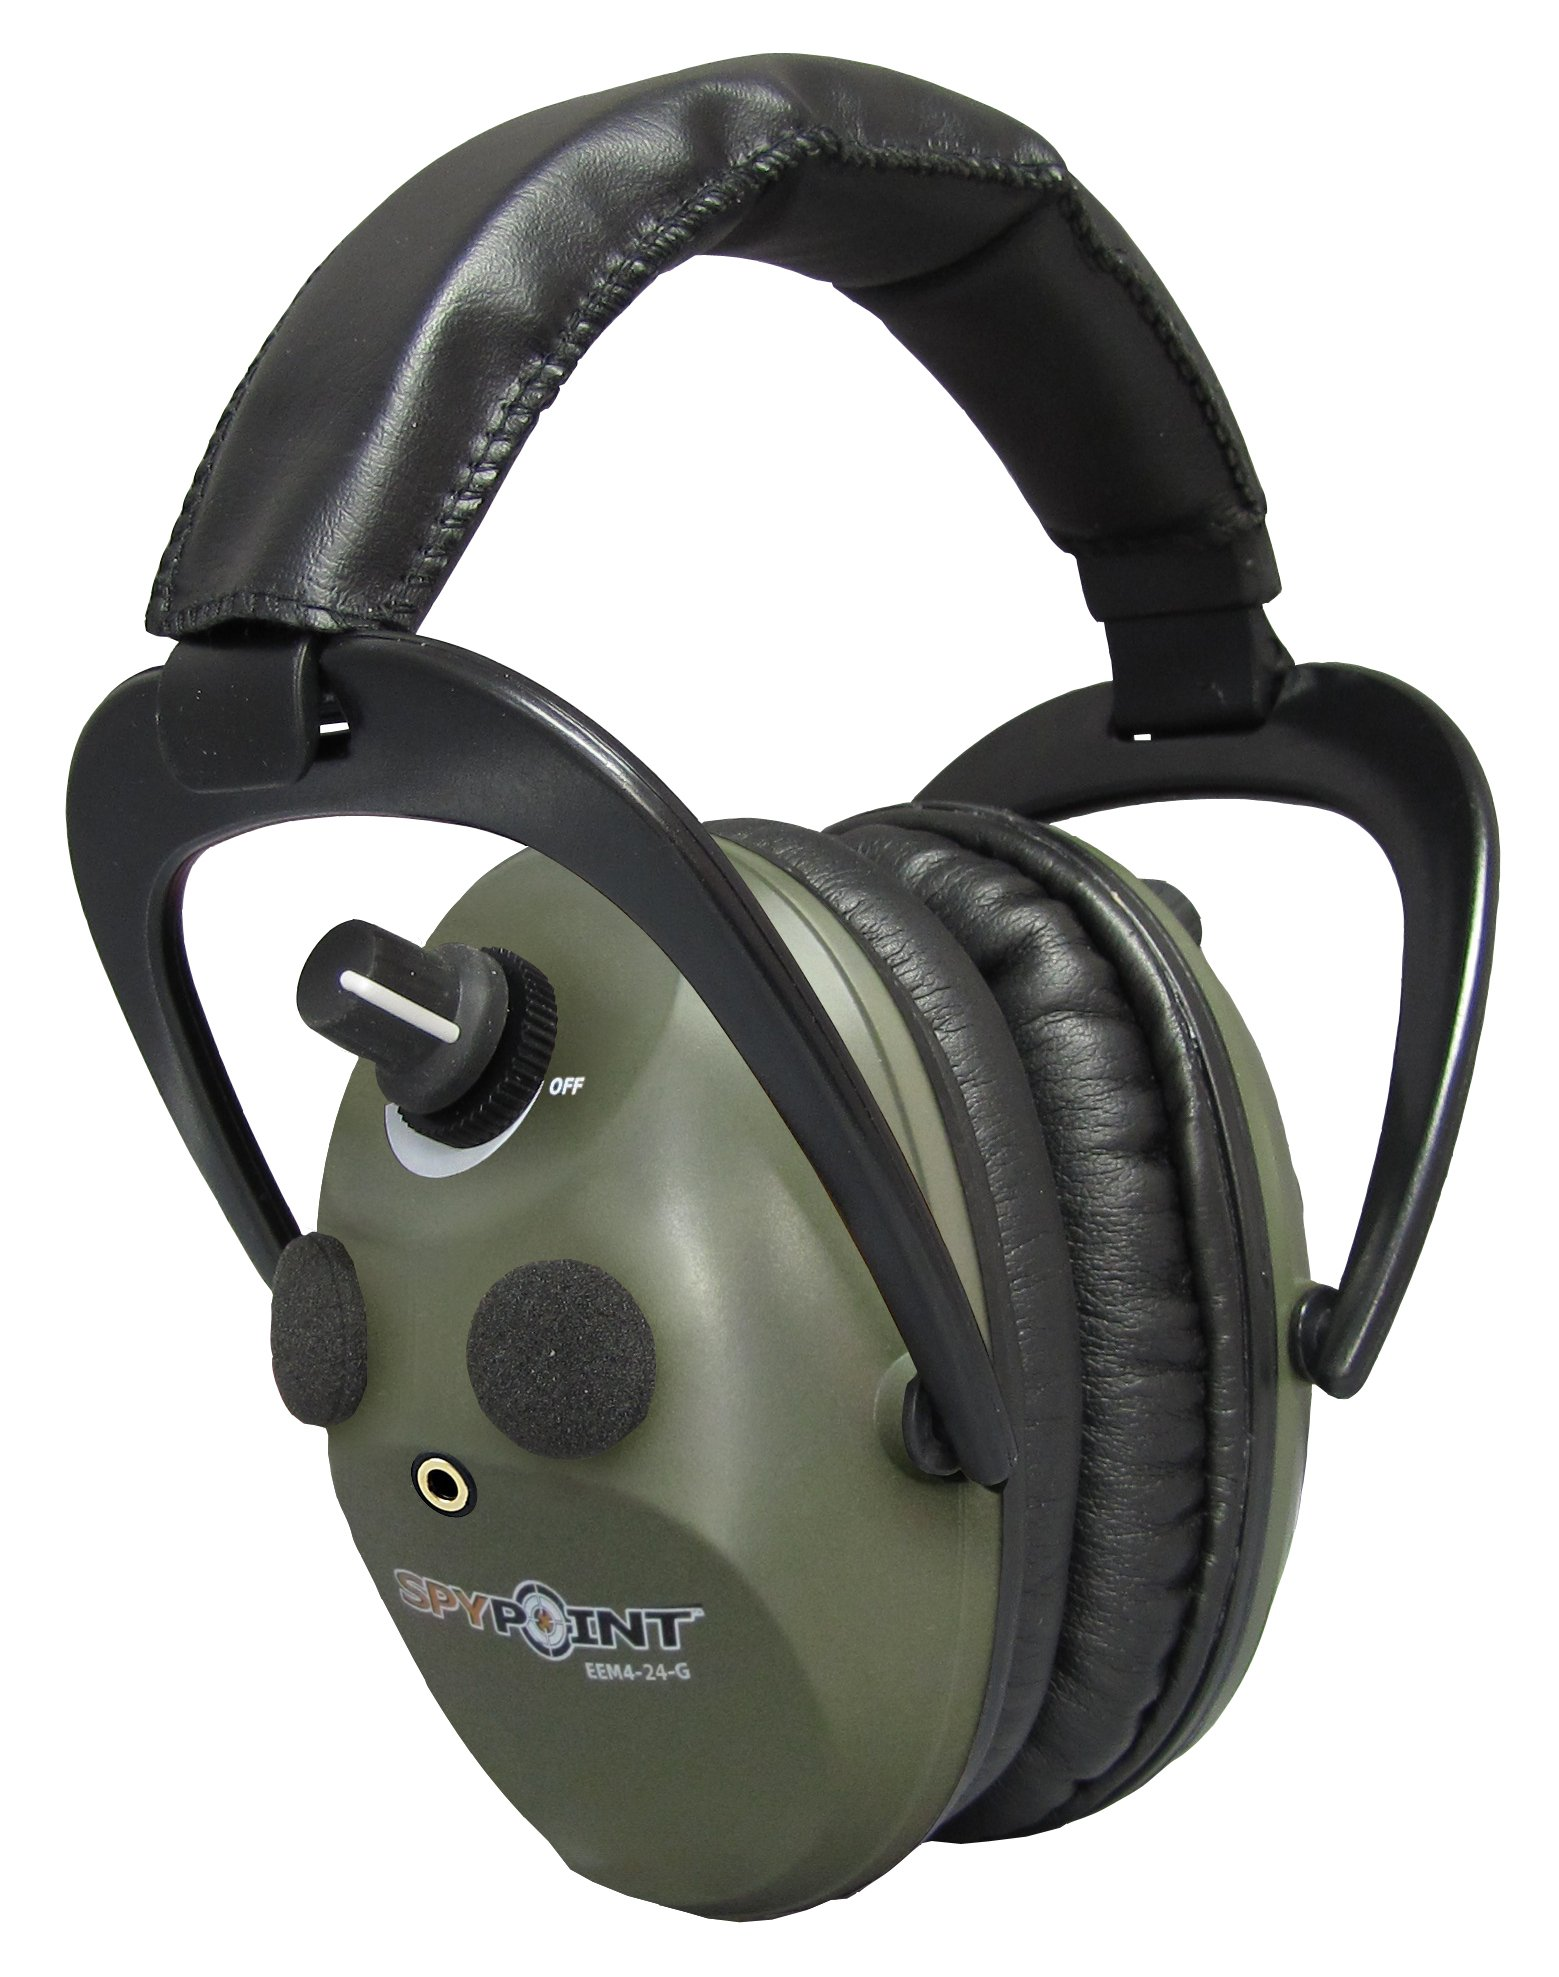 SPYPOINT EEM4-24-G Spy Pt, Electronic Em 4-24 Muffs, Green Army by SPYPOINT (Image #1)